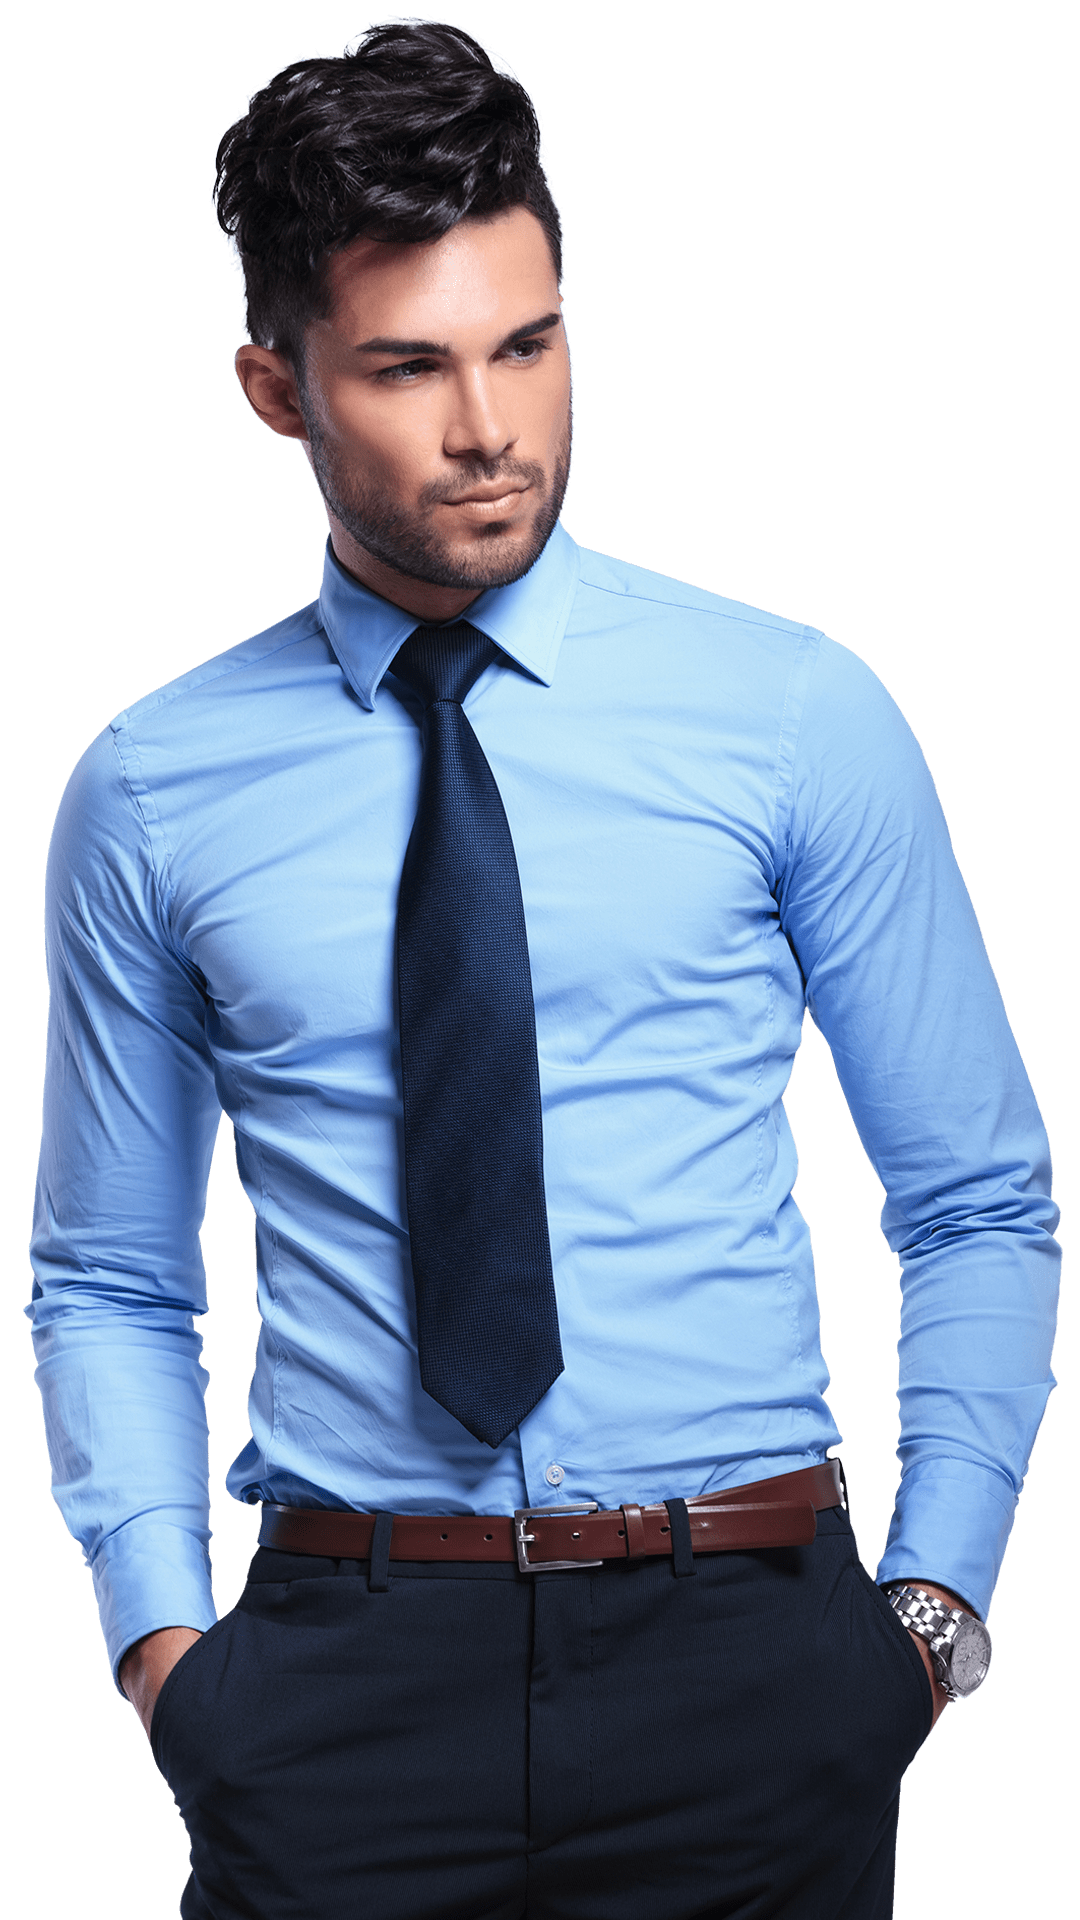 fitted bespoke shirt